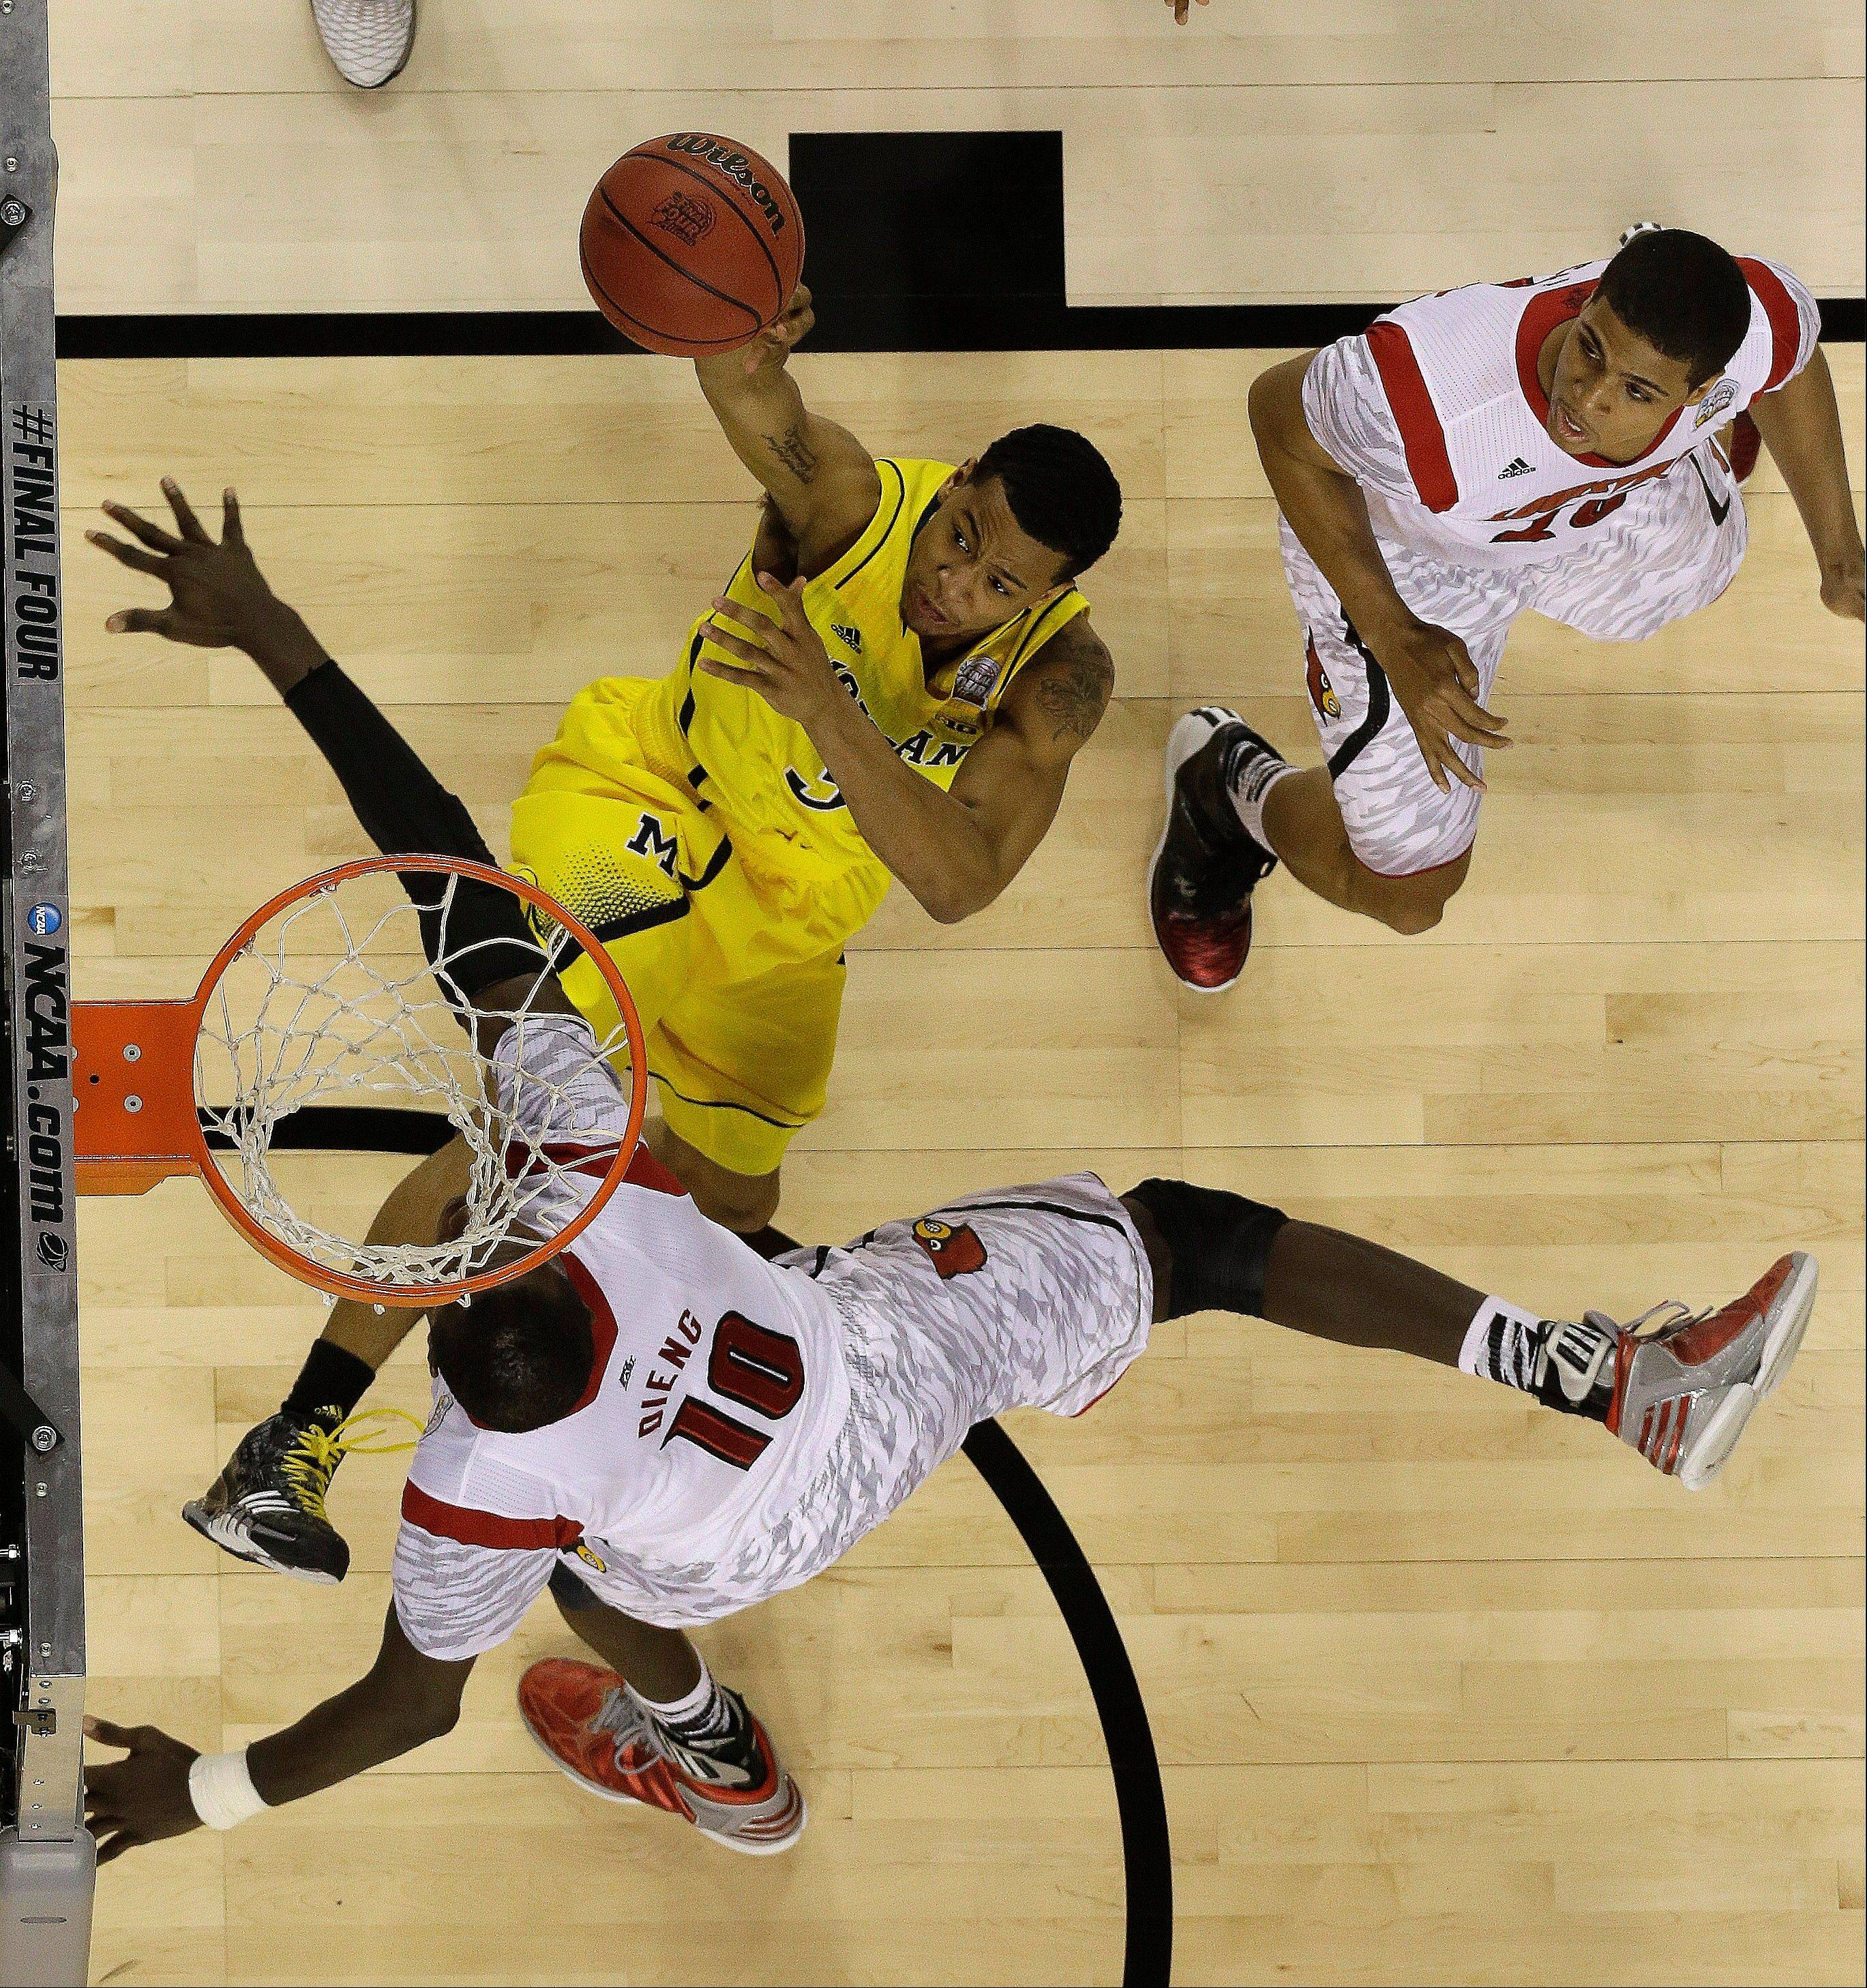 Michigan guard Trey Burke (3) shoots against Louisville center Gorgui Dieng (10) during the second half of the NCAA Final Four tournament college basketball championship game Monday, April 8, 2013, in Atlanta.